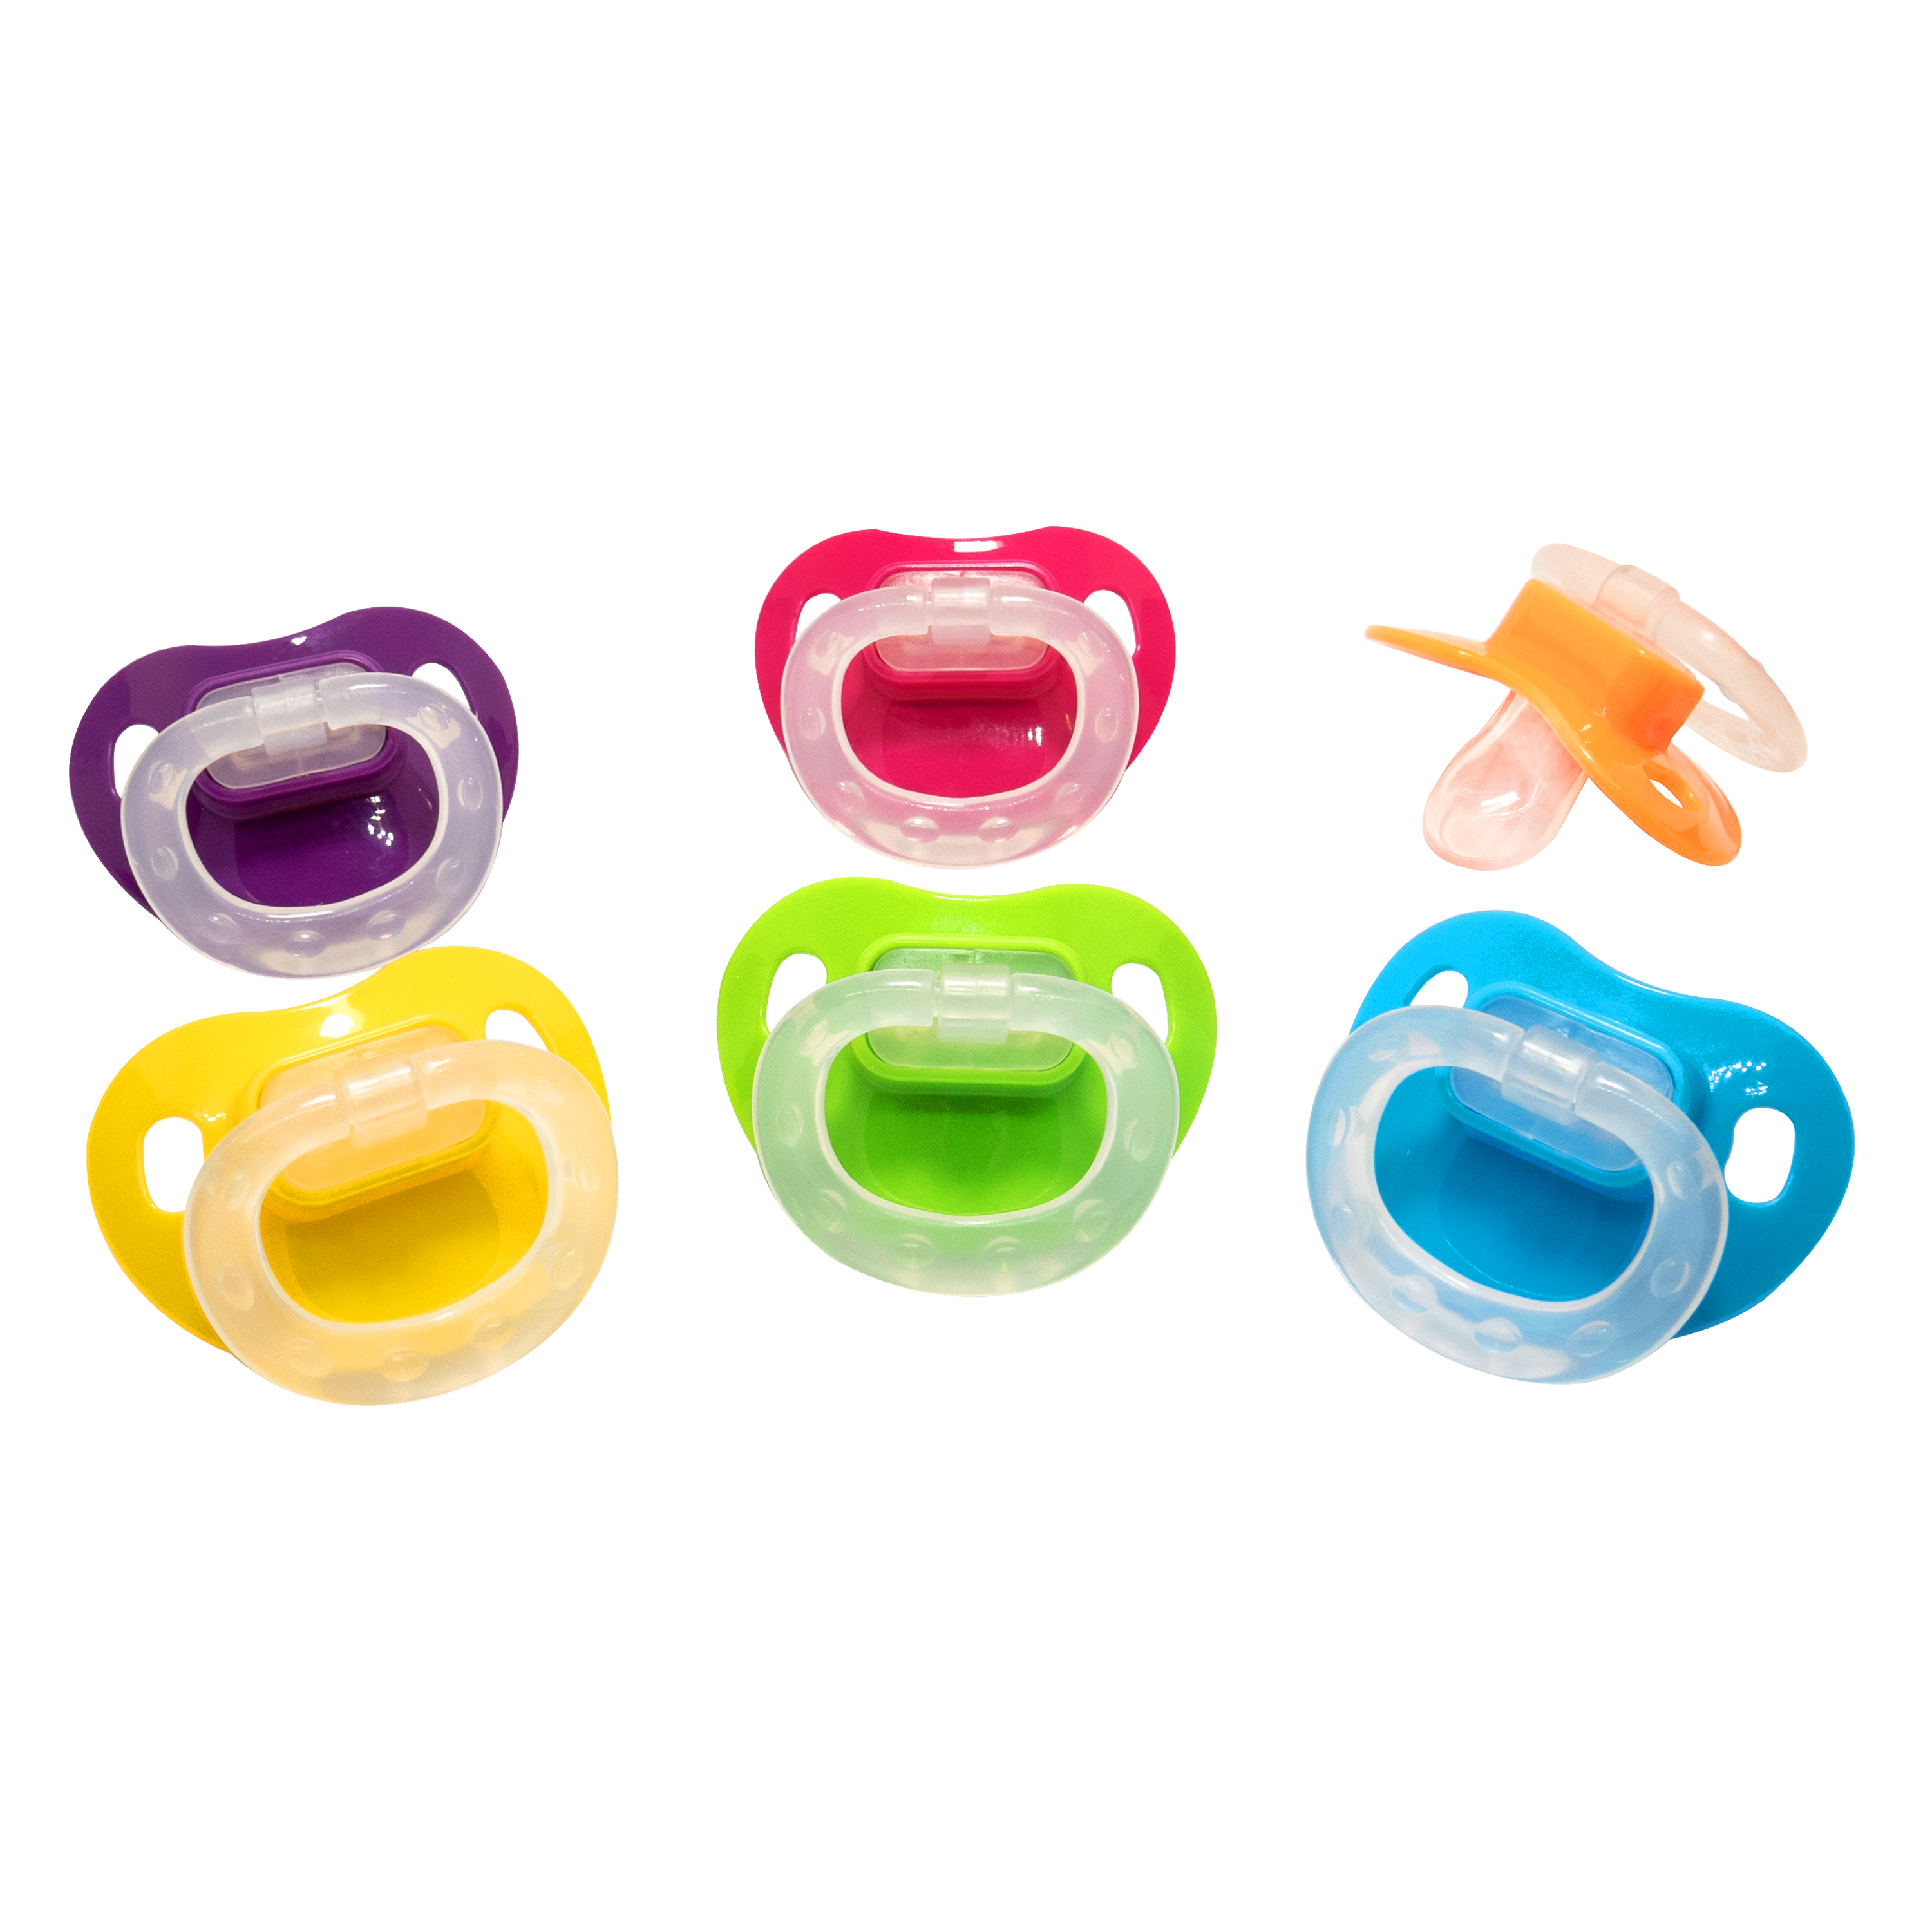 Parent's Choice Silicone Pacifiers, 0+ Months - 2 Counts (Colors May Vary)